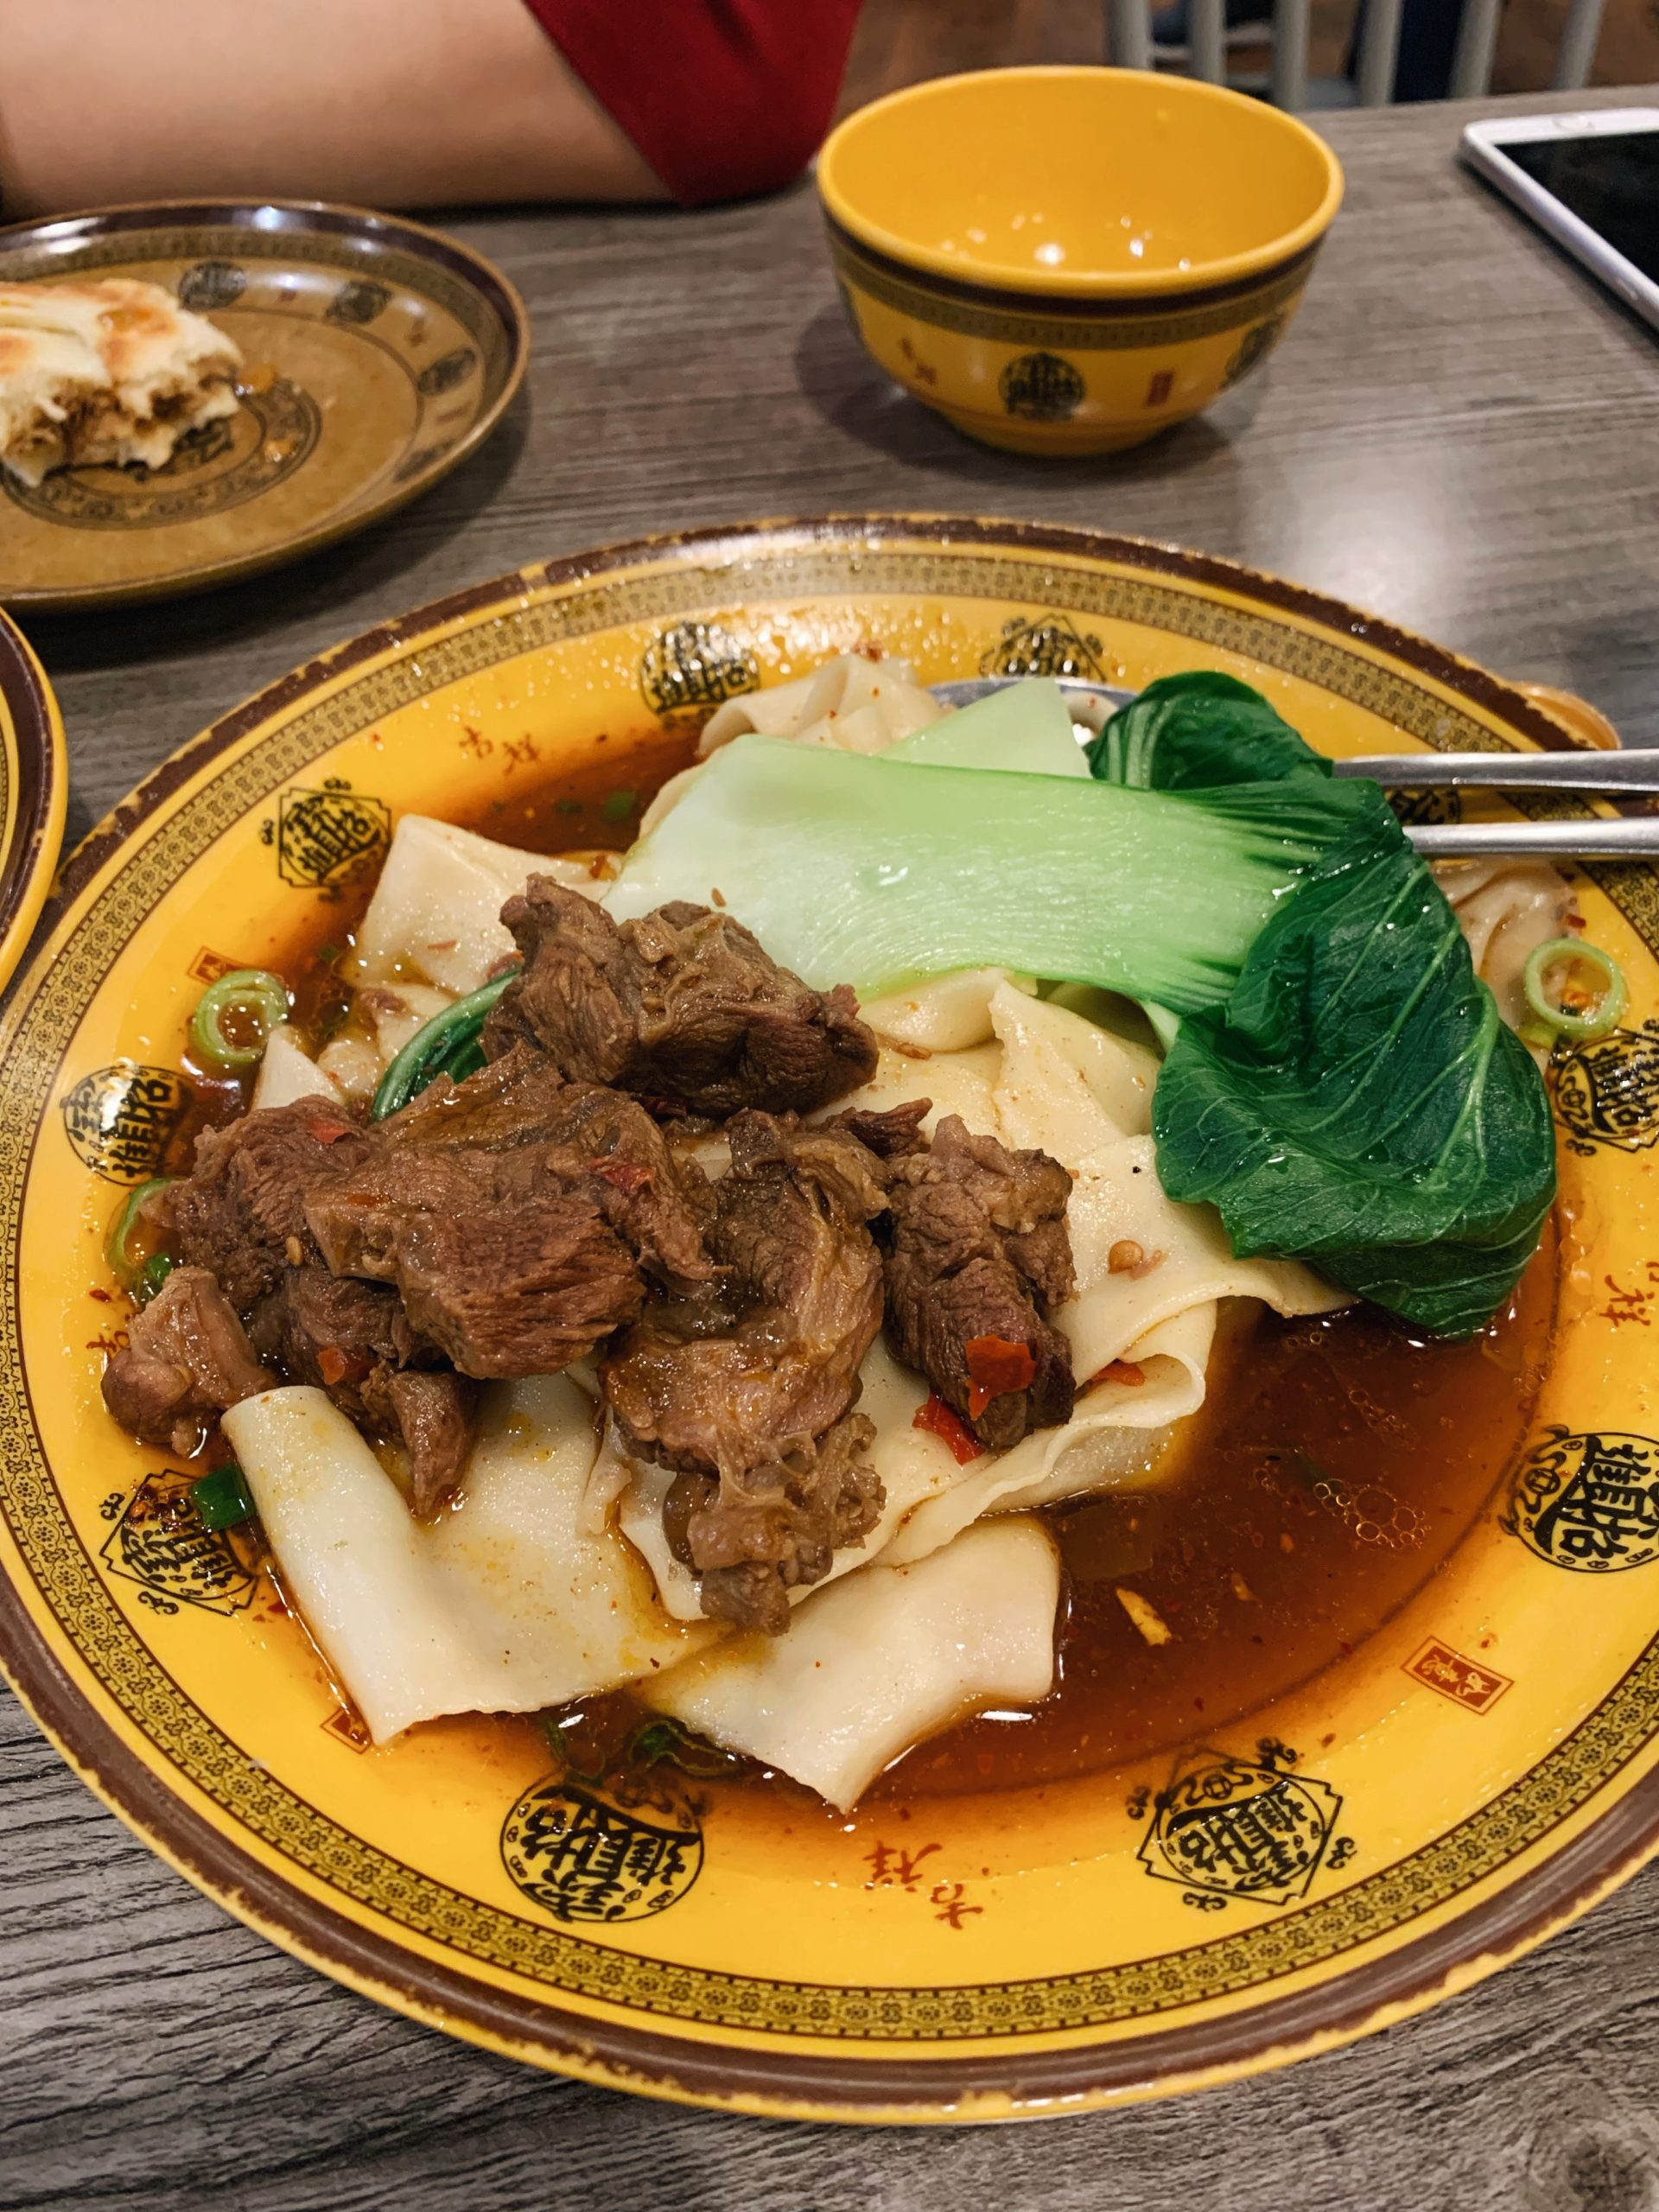 Beef hand pulled noodles served with pak choi on a yellow plate with Chinese characters